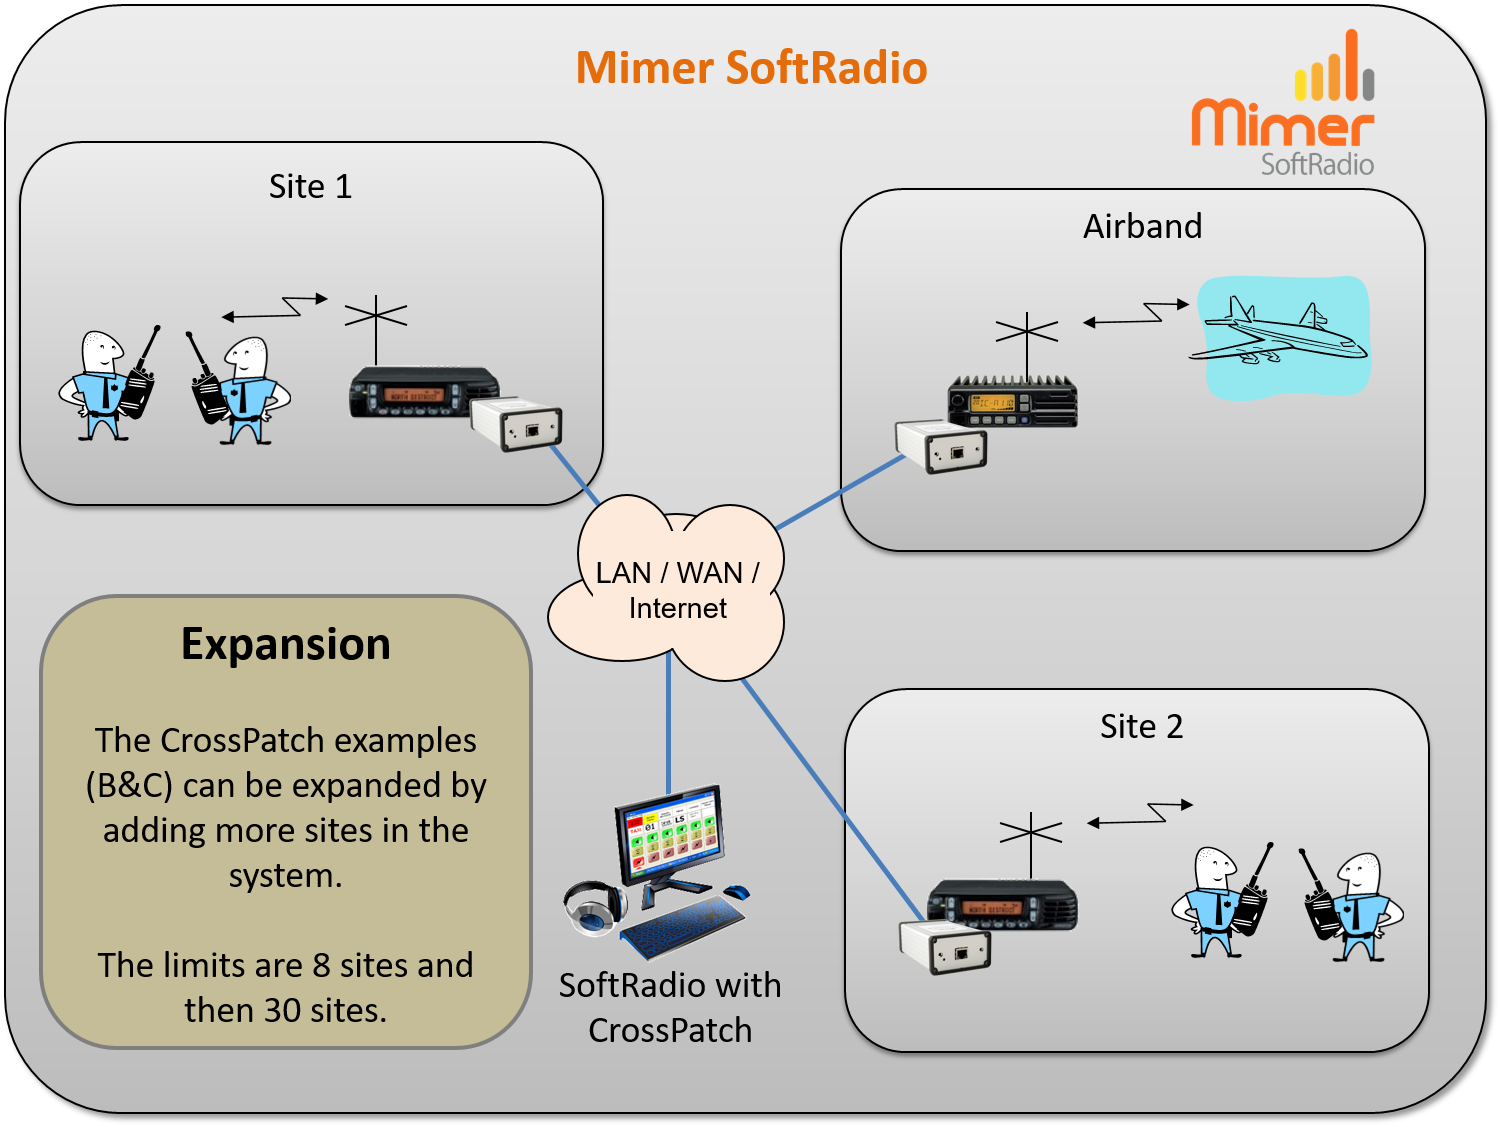 CrossPatch with Mimer SoftRadio, expanded with more radio sites